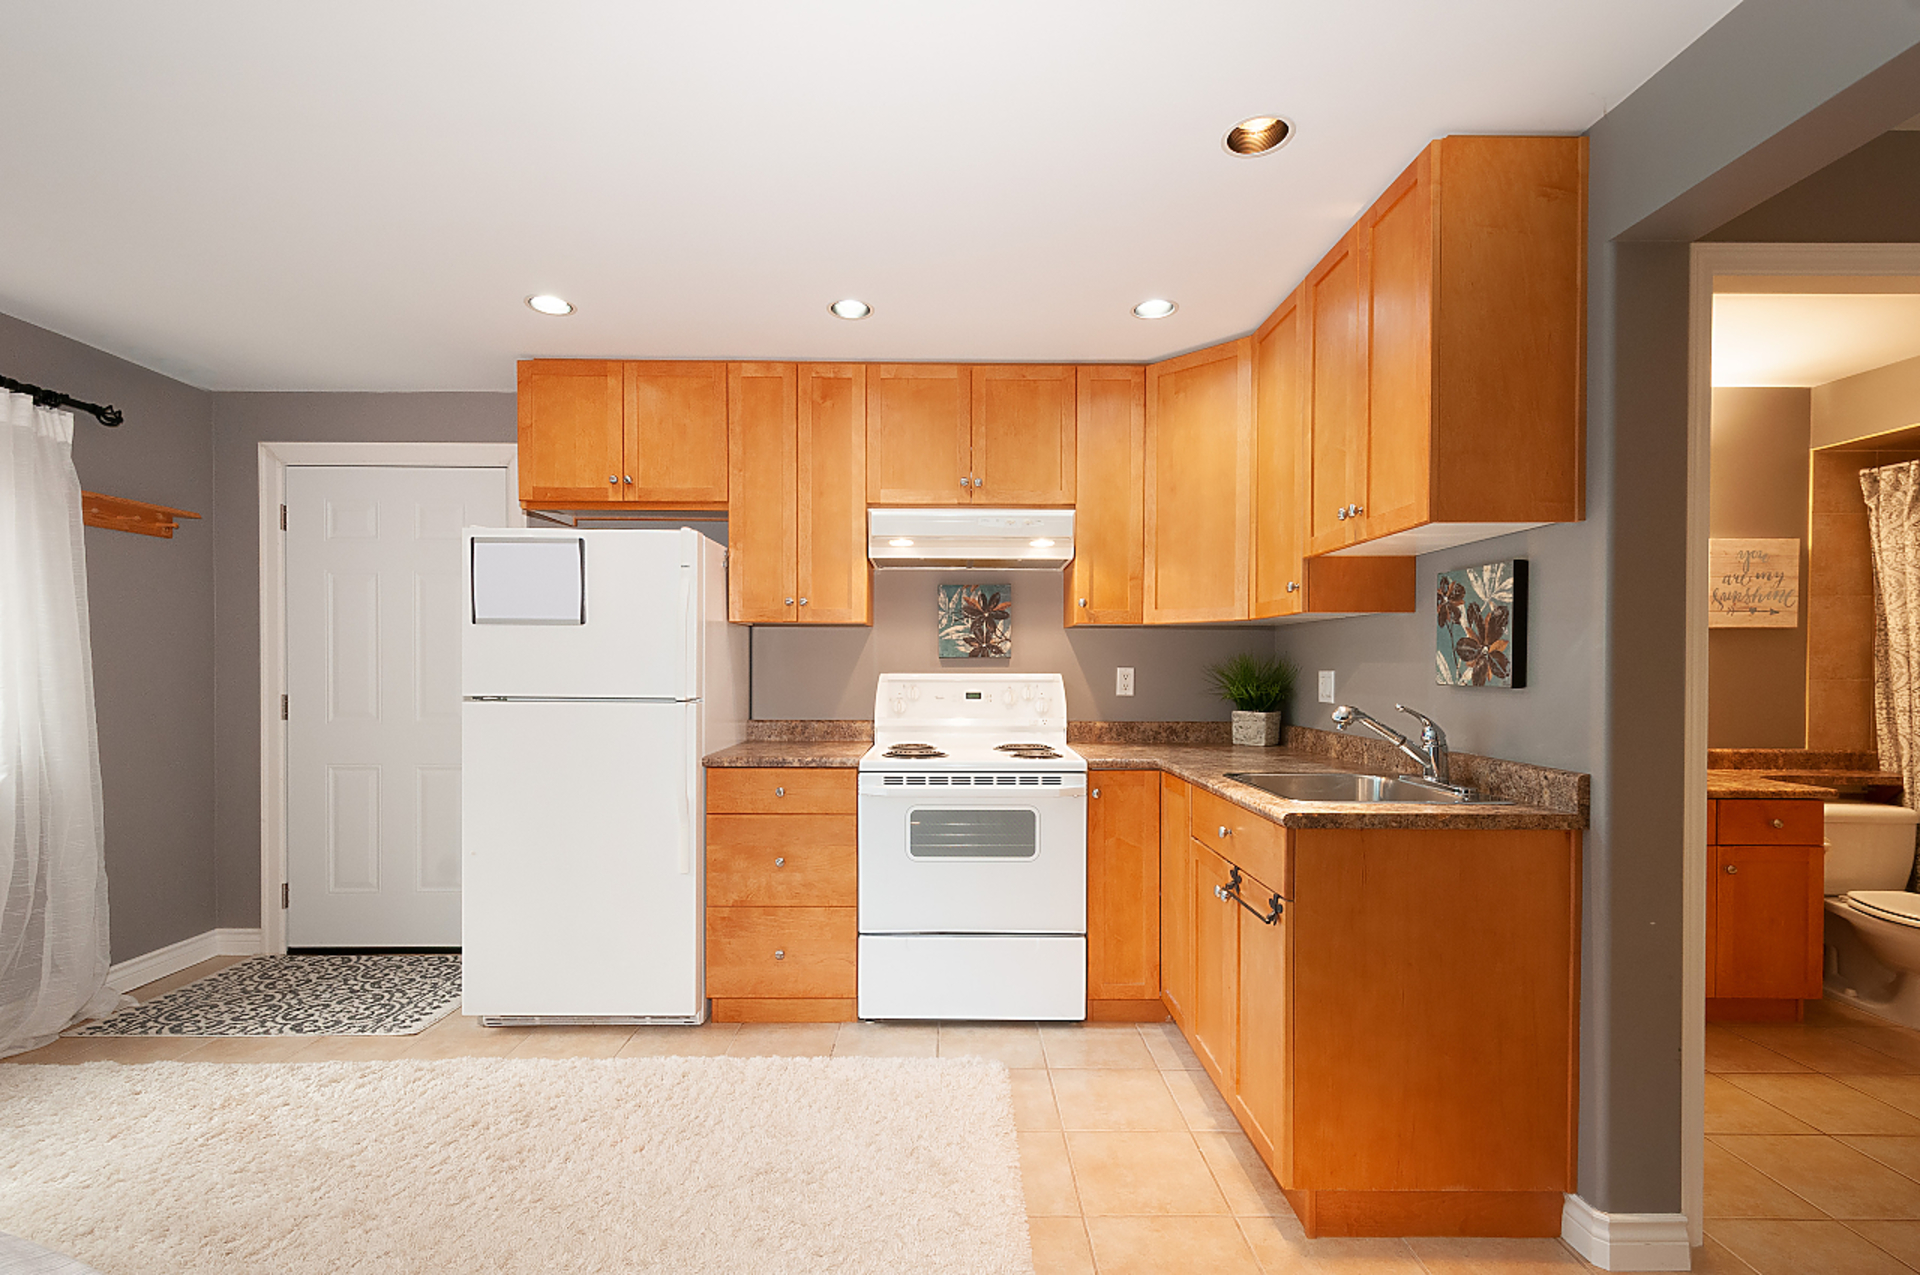 032 at 20 Chestnut Way, Heritage Woods PM, Port Moody